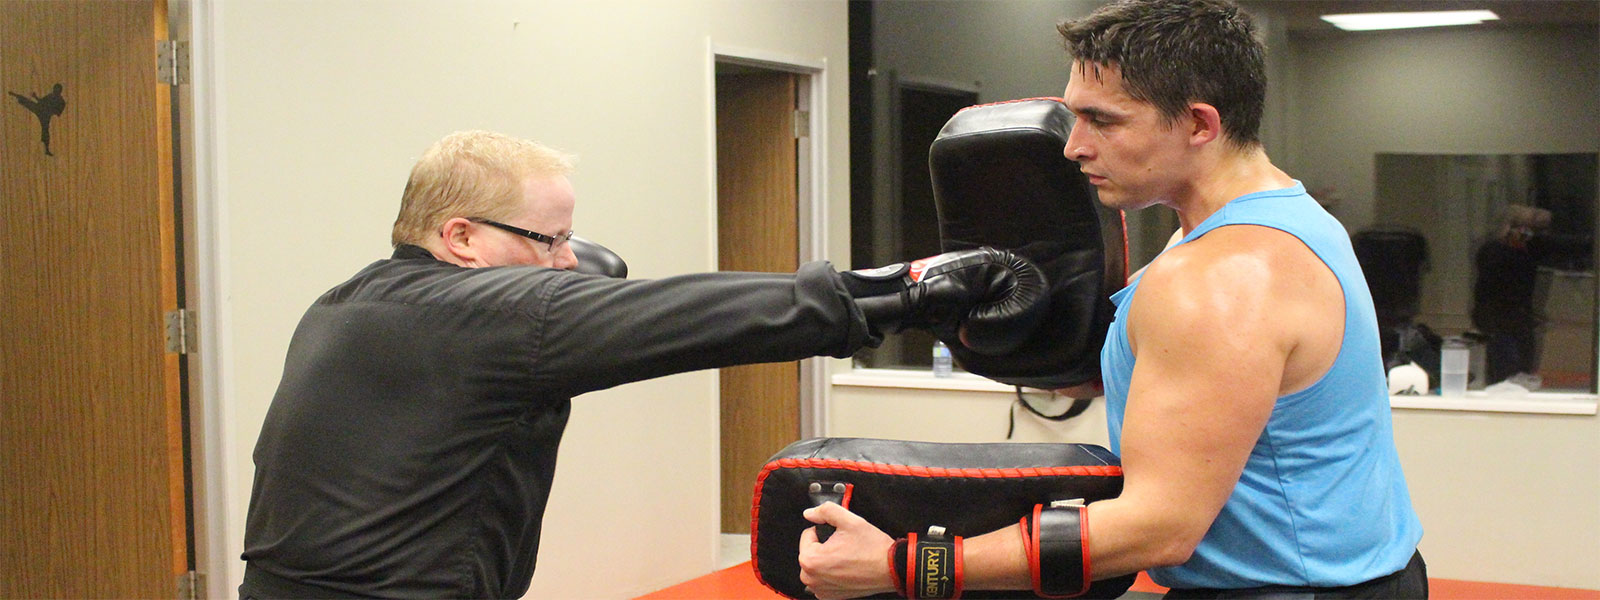 kickboxing lesson at aurora family martial arts